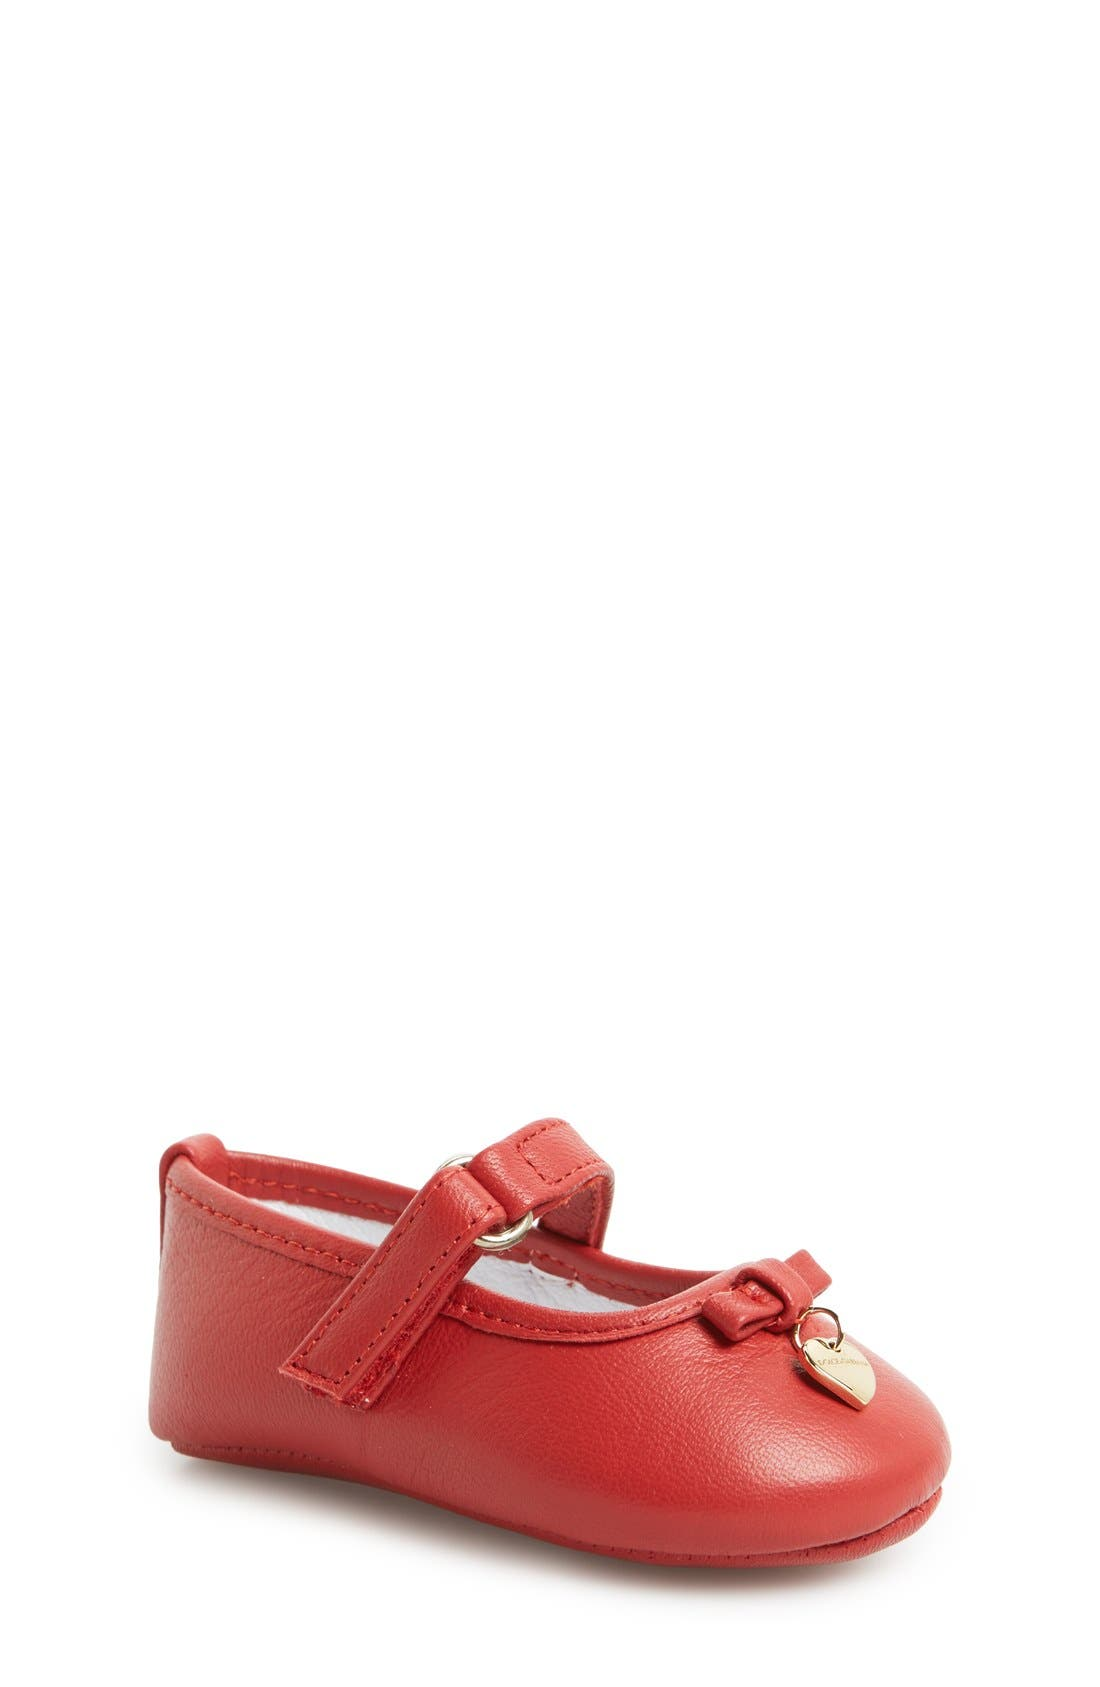 Main Image - Dolce&Gabbana Mary Jane Crib Shoe (Baby & Walker)